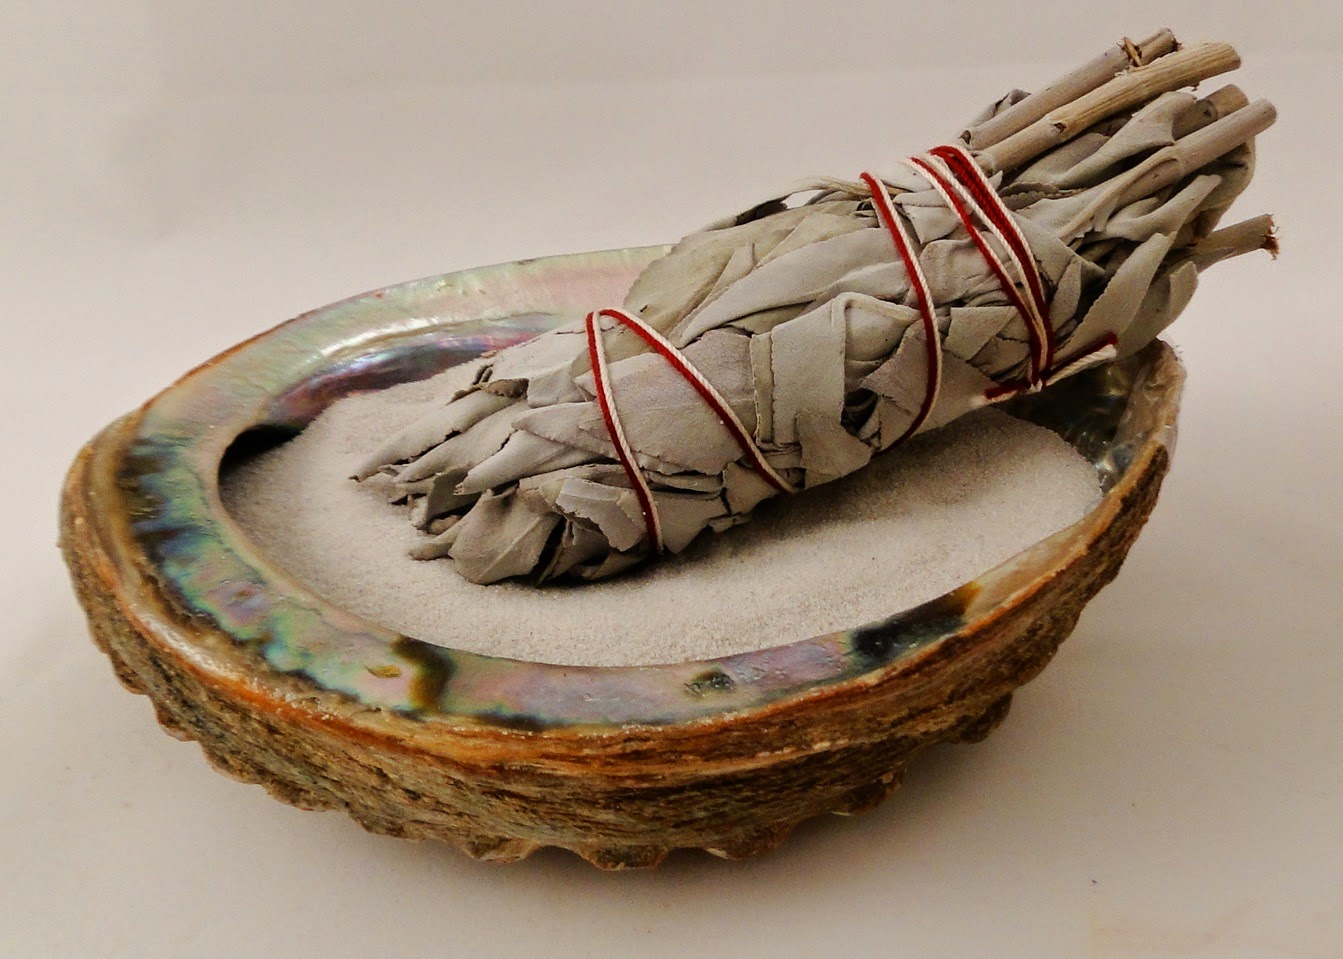 Sage Smudge Cleanse Blessing Ceremony Your Source For